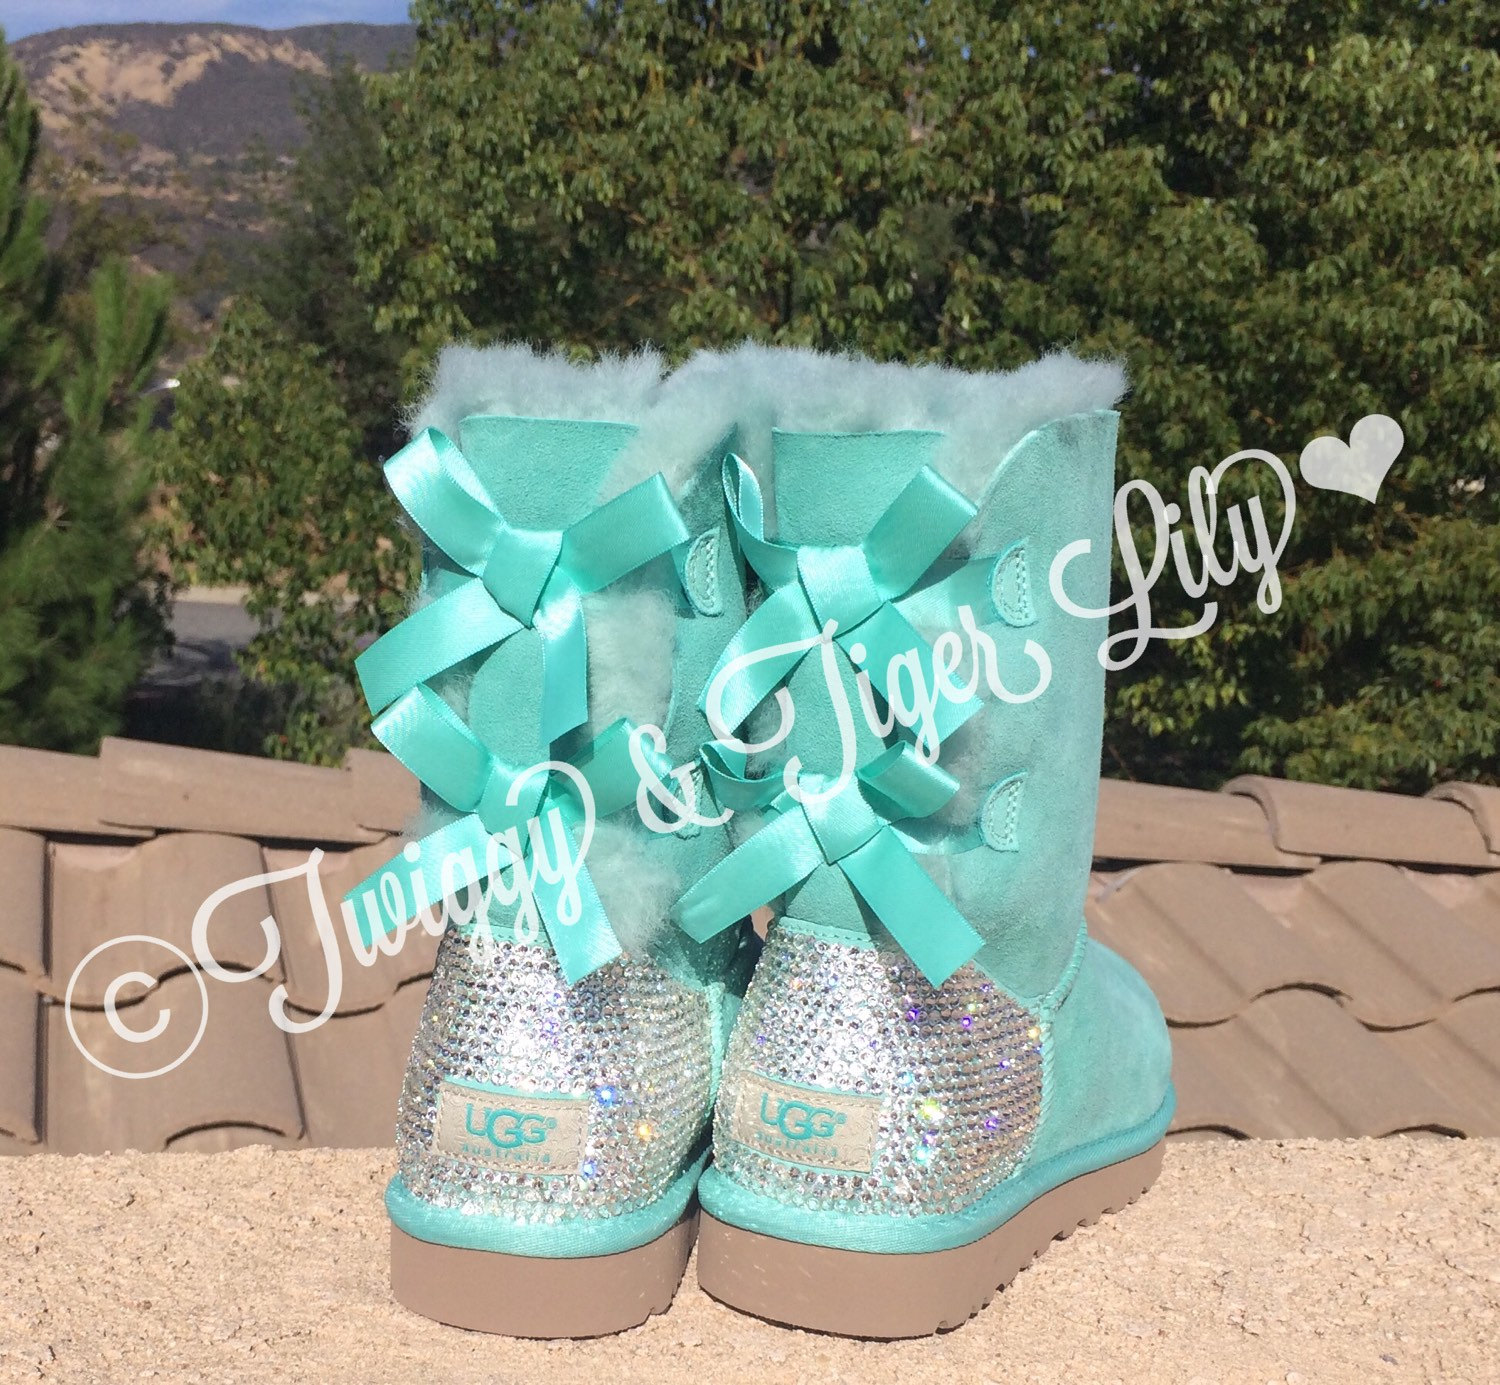 Bling Ugg Bailey Bow Mint Boots crystallized with Swarovski Crystals - Mint Uggs with Bling